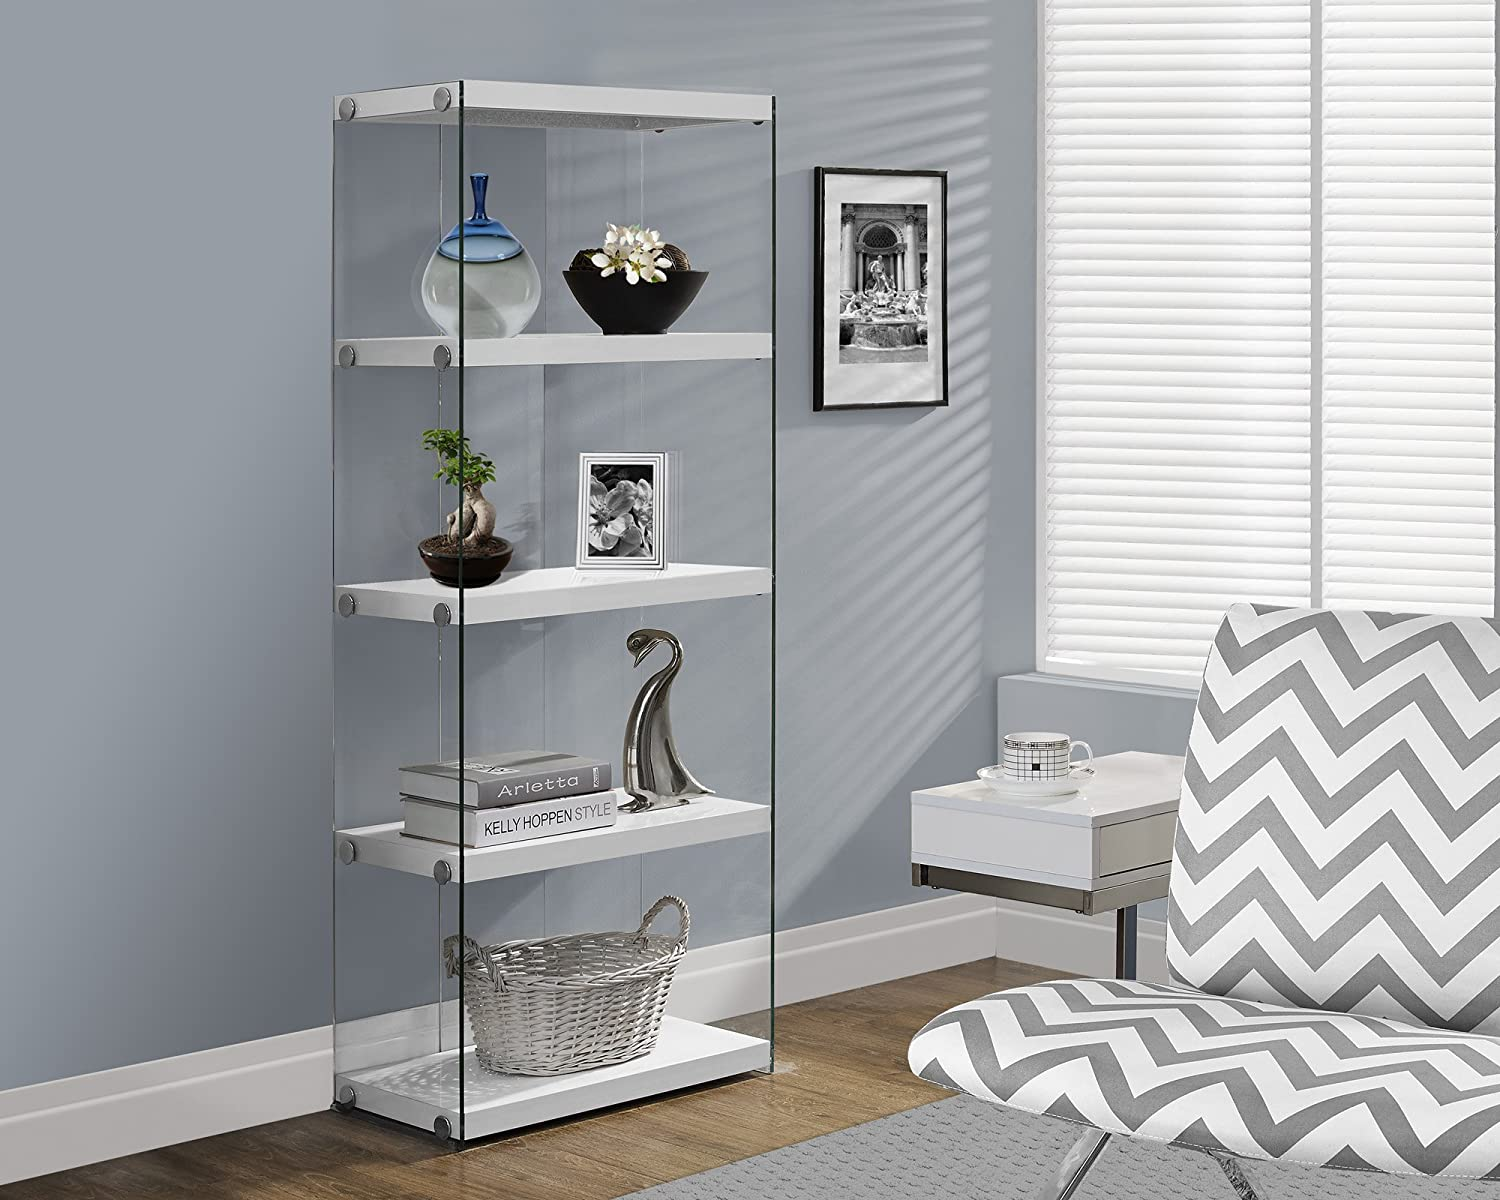 Design Glass Bookcase amazon com monarch specialties i 3289 bookcase tempered glass glossy white 60h kitchen dining